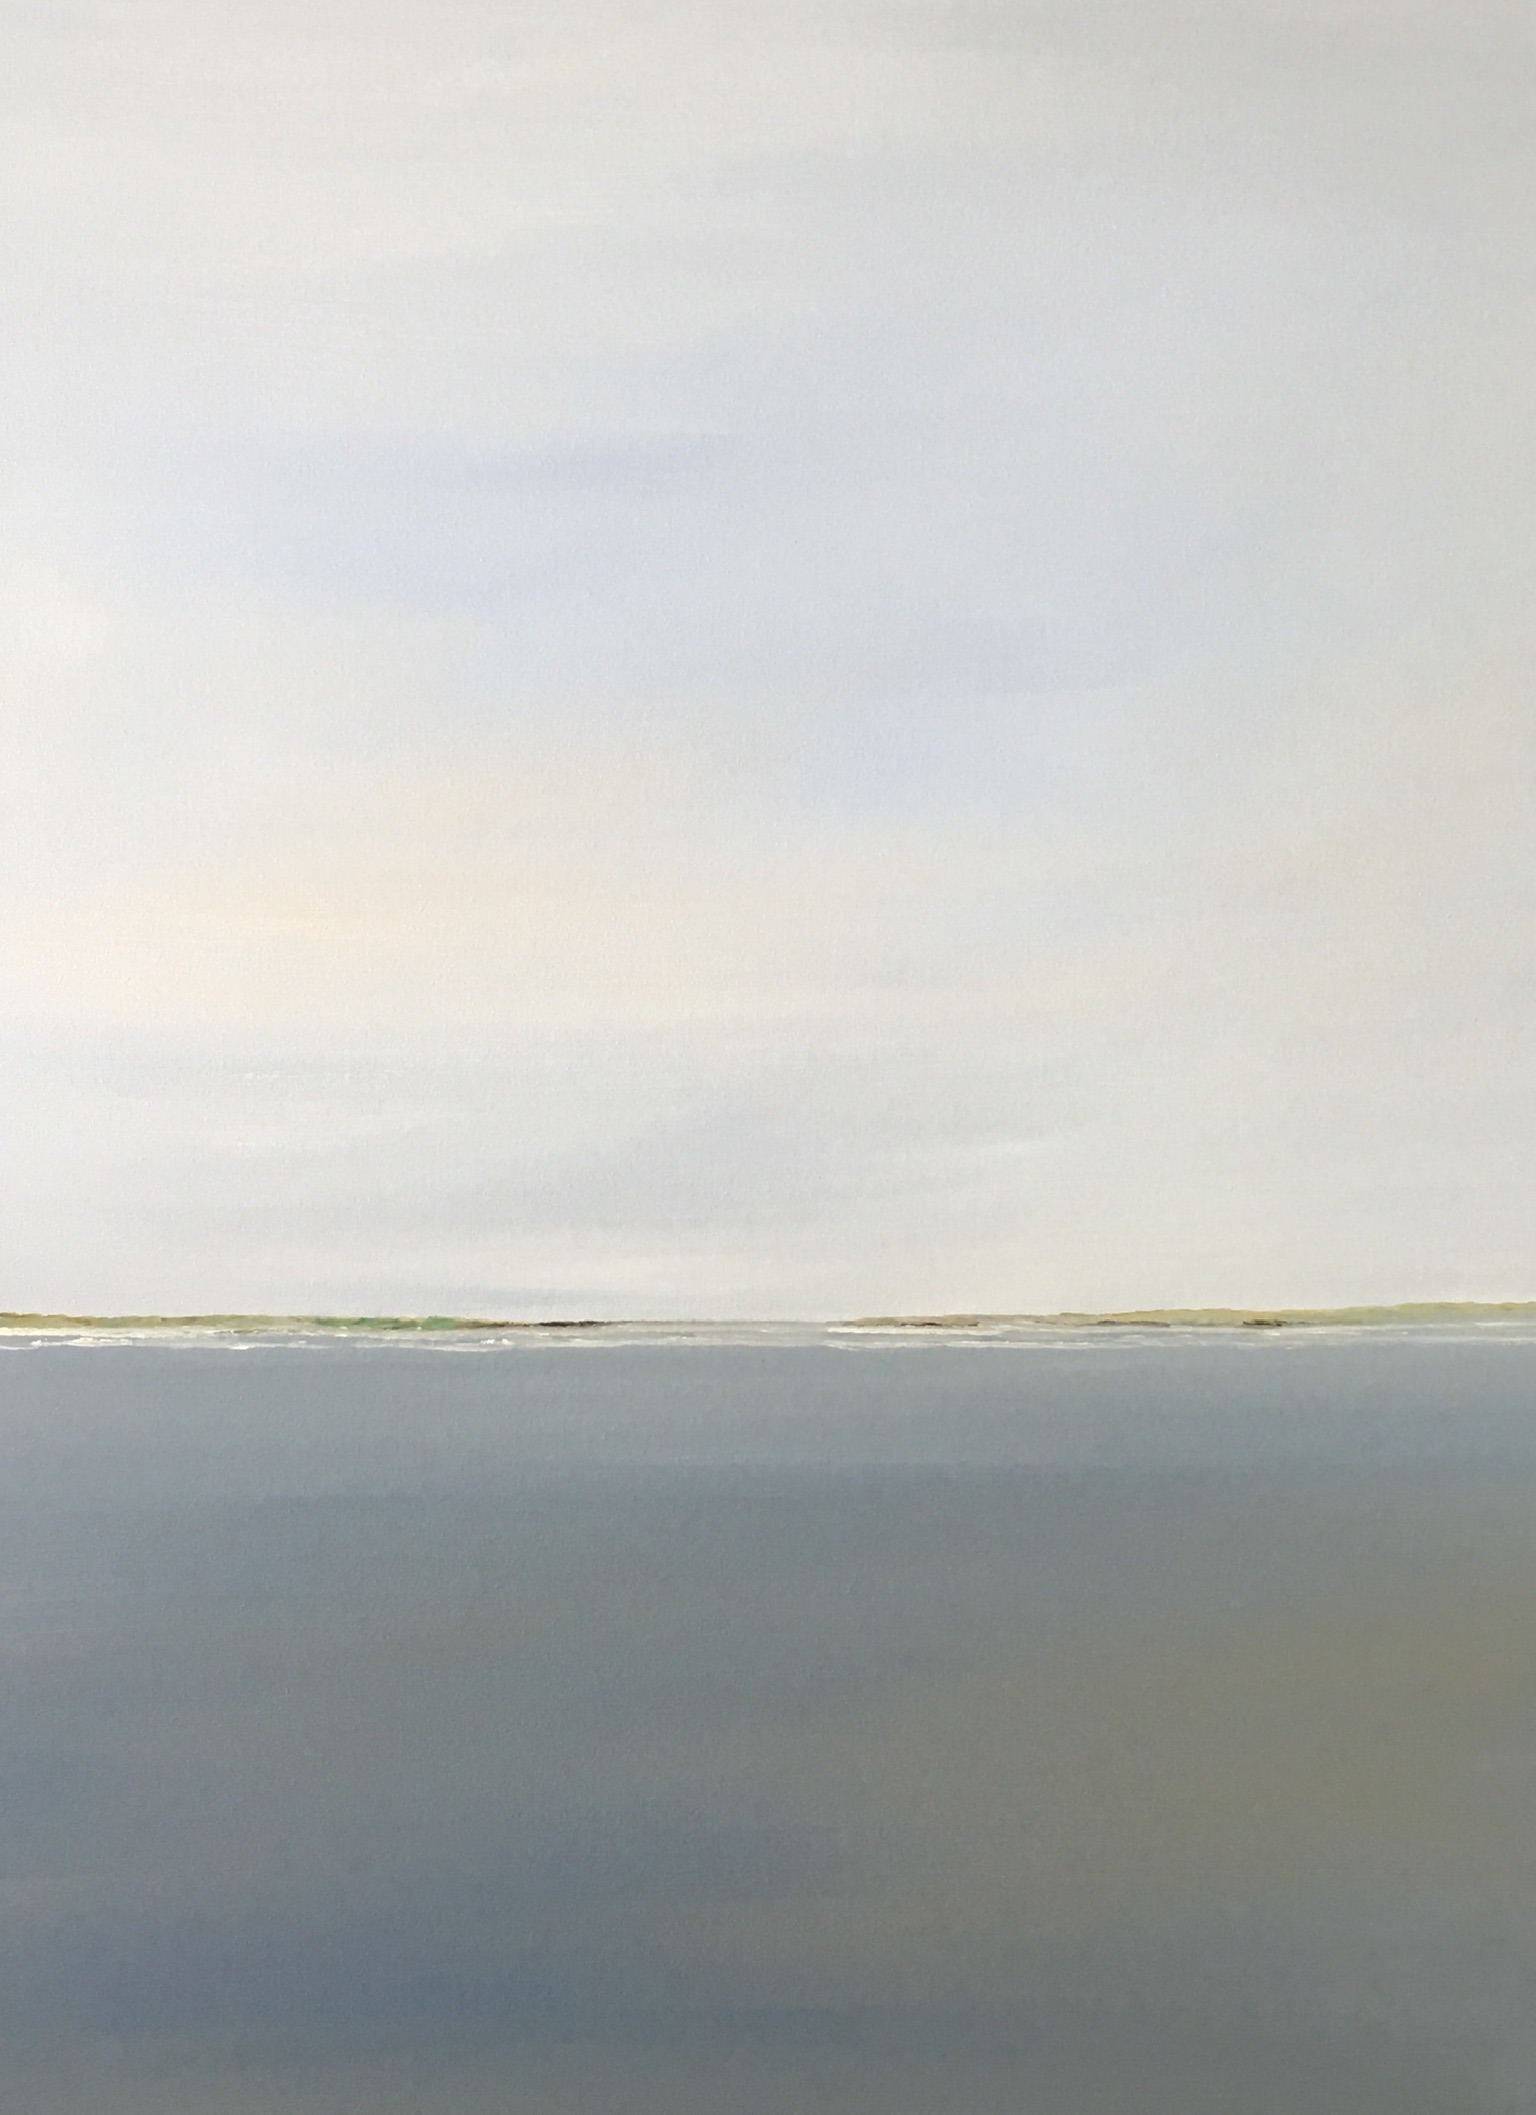 A conversation with Becky O'Toole #interview #creativity #coastal #seascapes